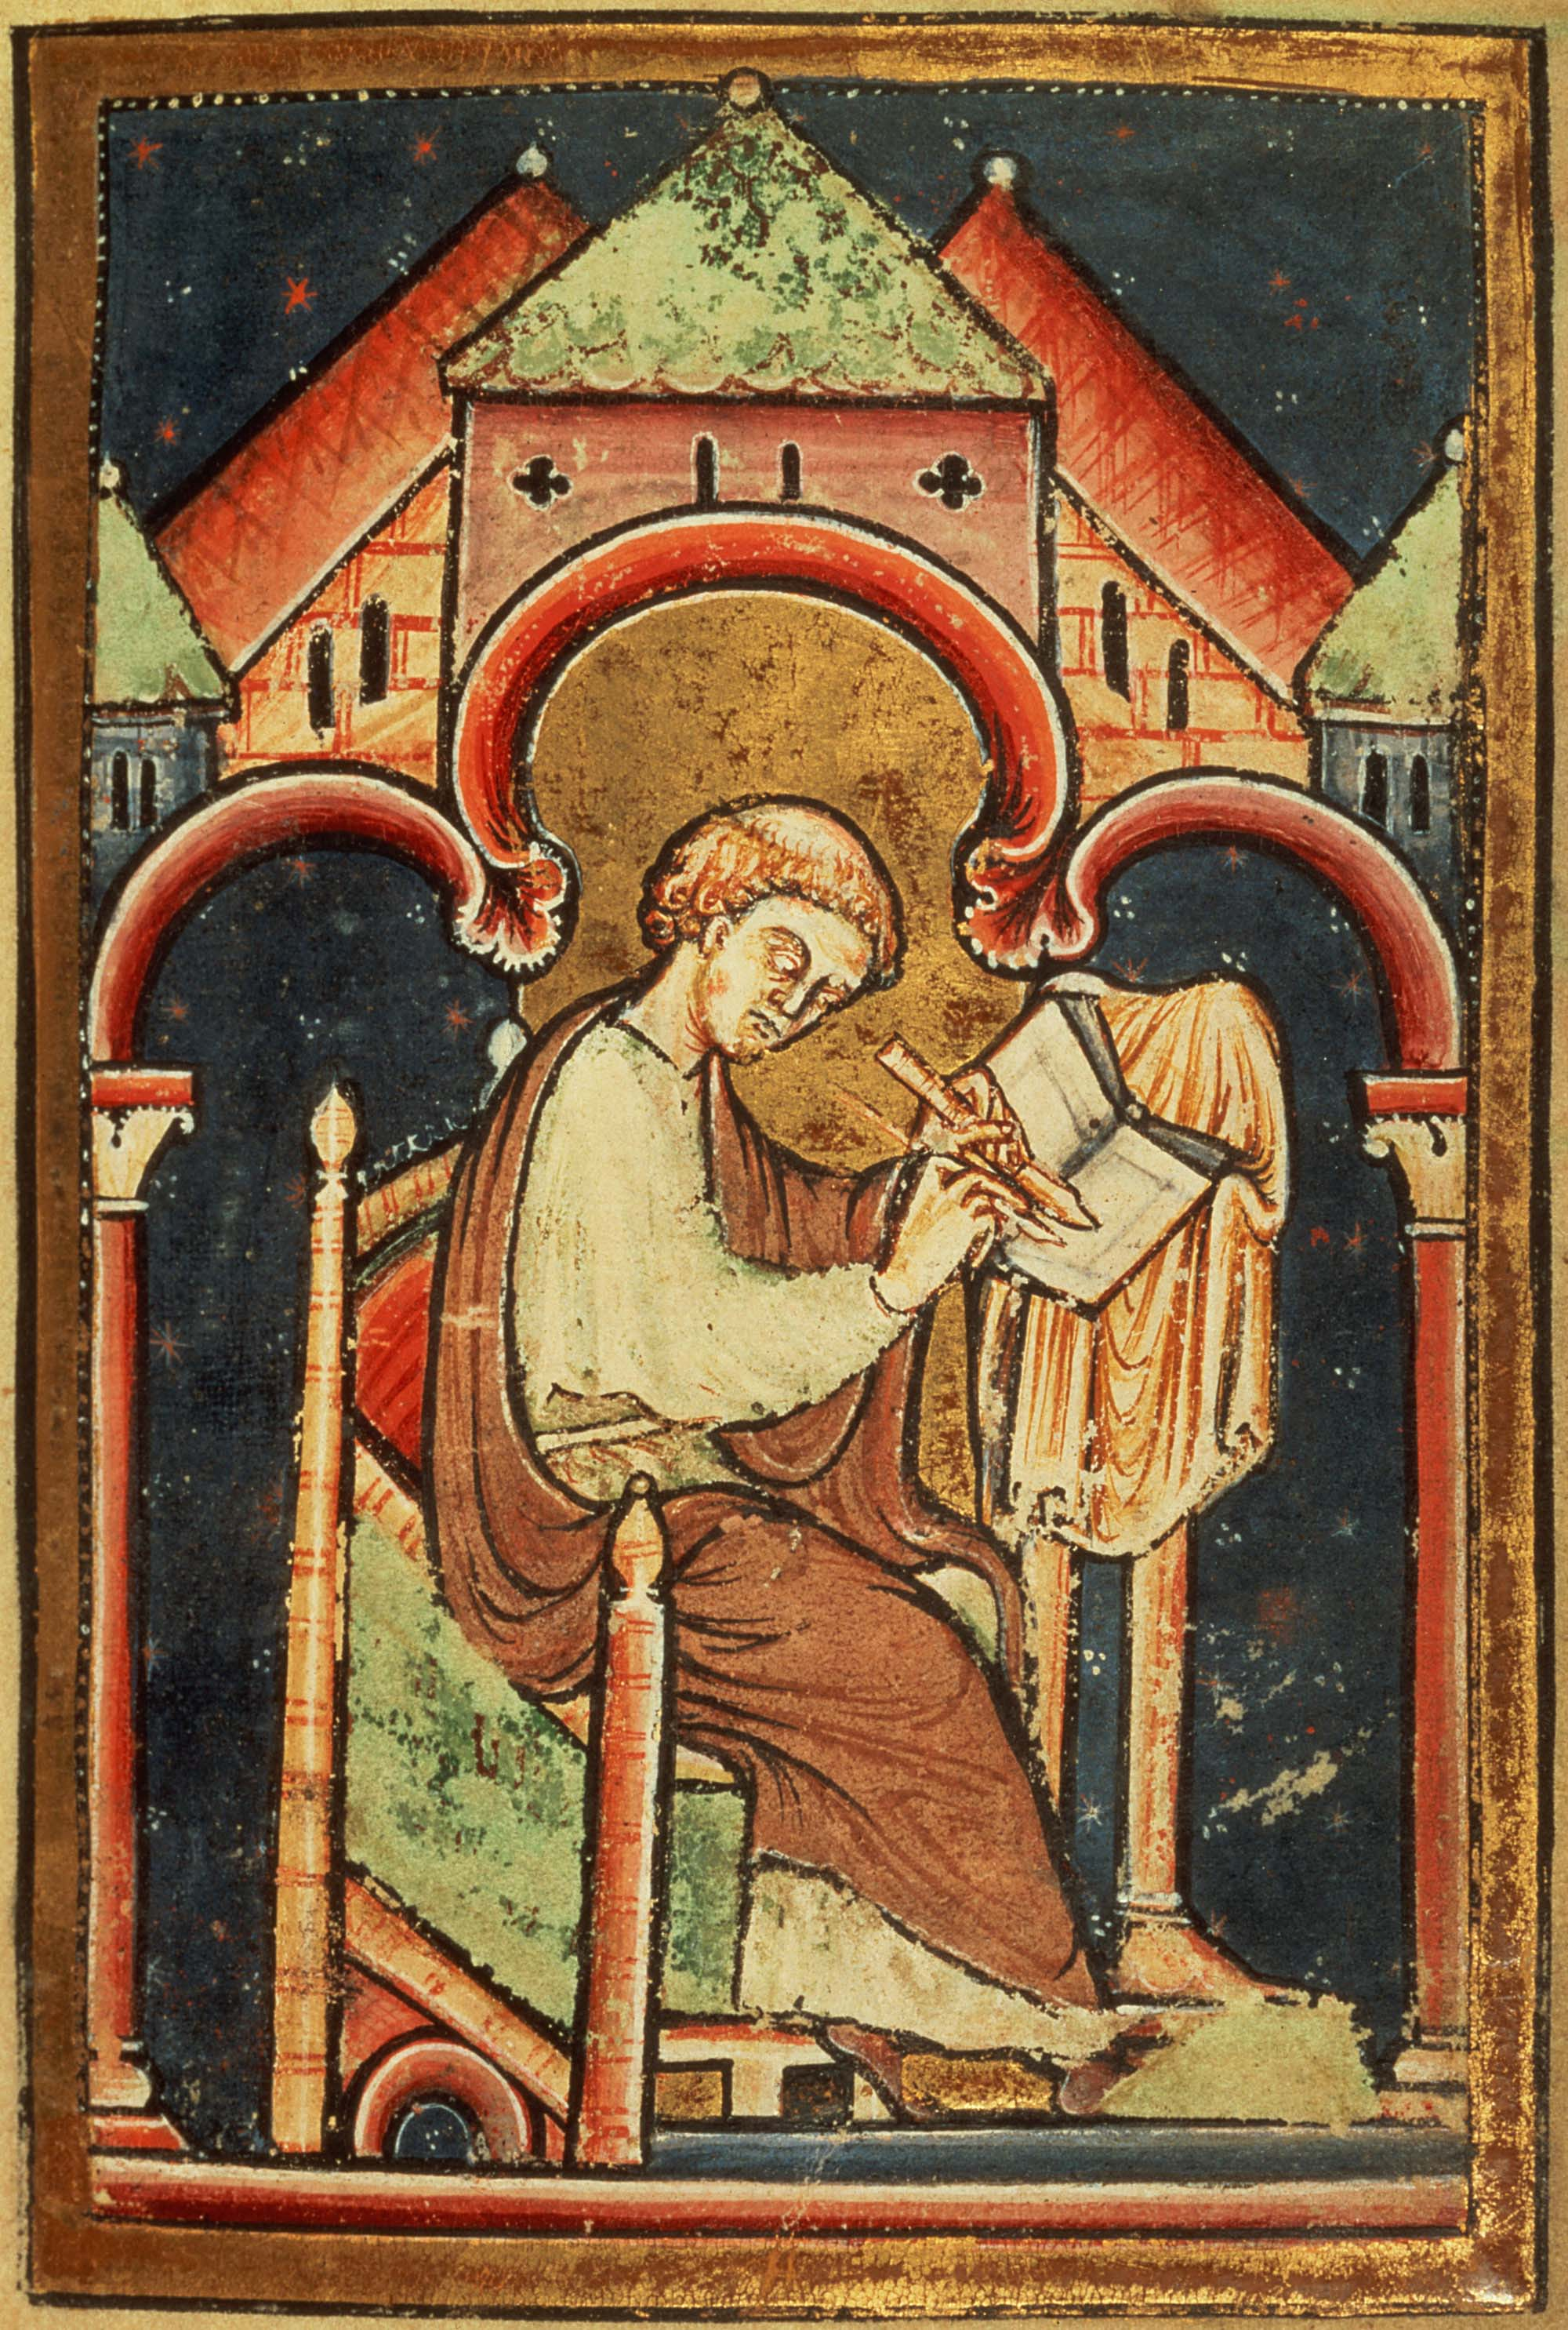 Saint Bede the Venerable (c. 673 – 735): Benedictine monk, priest, historian, Doctor of the Church. dans immagini sacre Saint-Bede-the-Venerable